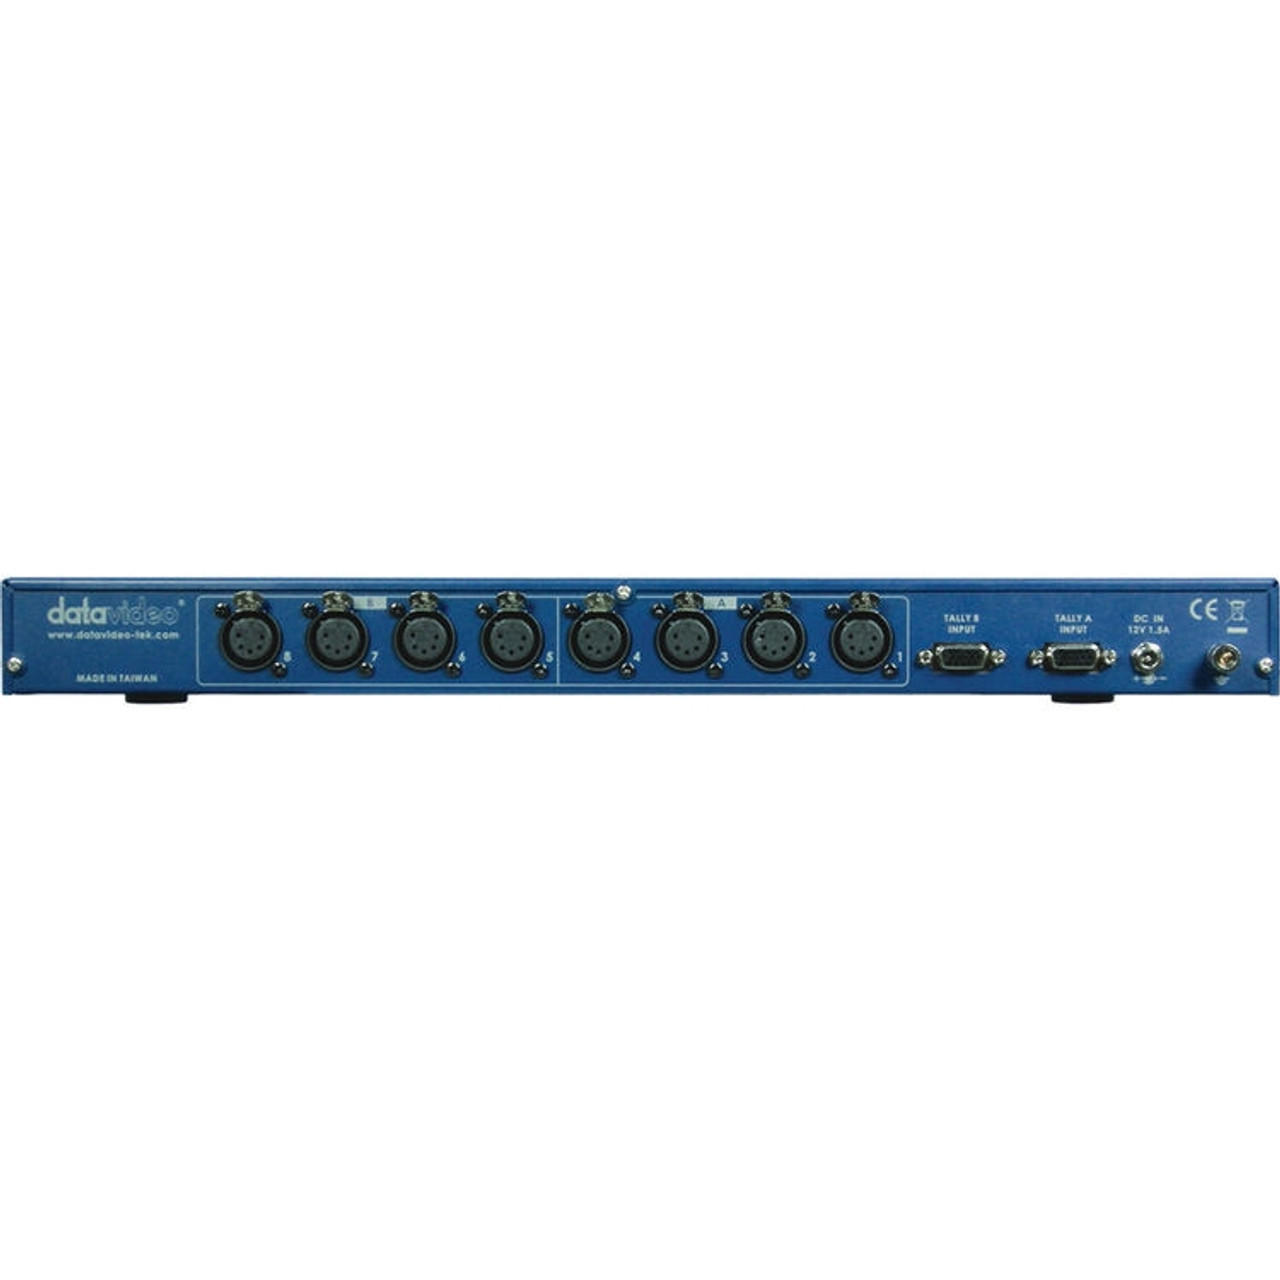 f912c8efdf6854 ... Datavideo ITC100-HP1K Wired Intercom System with Four HP-1 Headsets Kit  ...